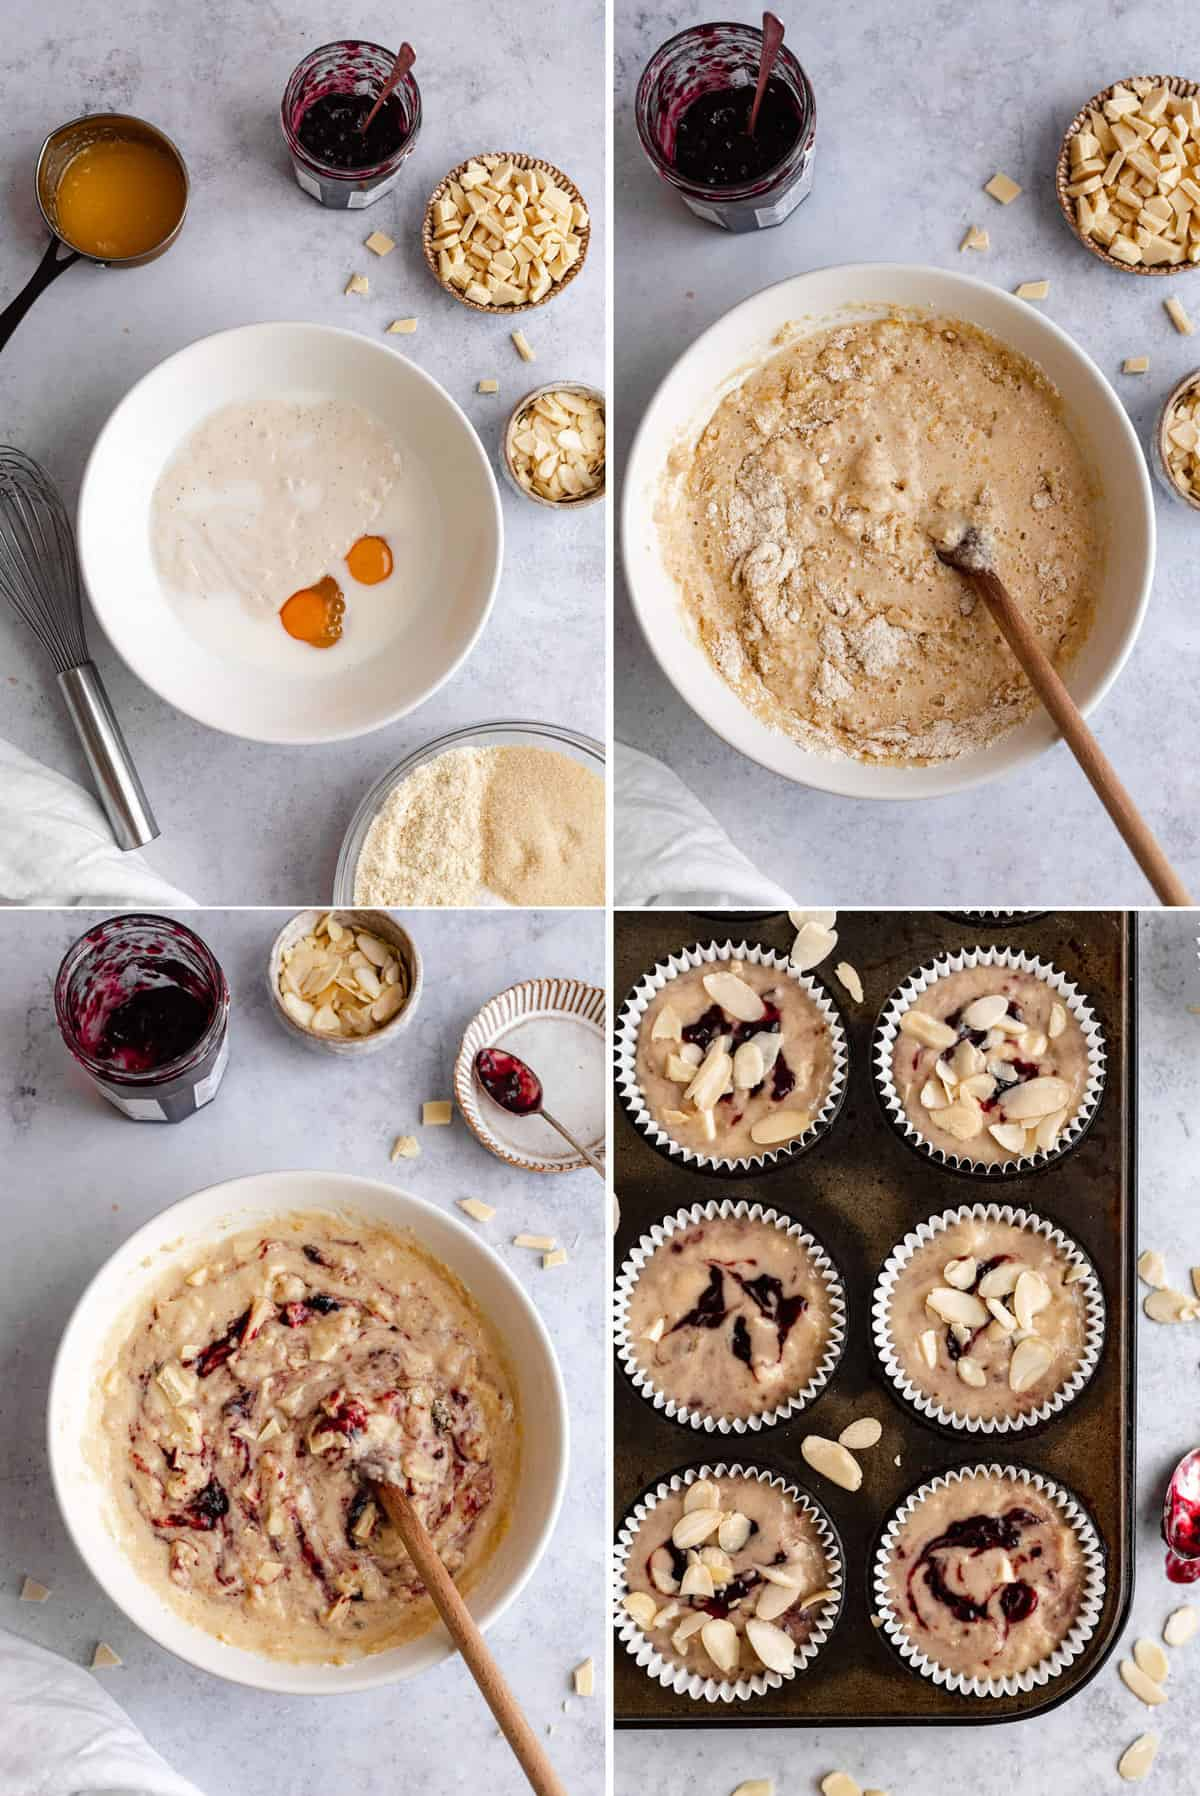 collage of images showing the process of making muffins